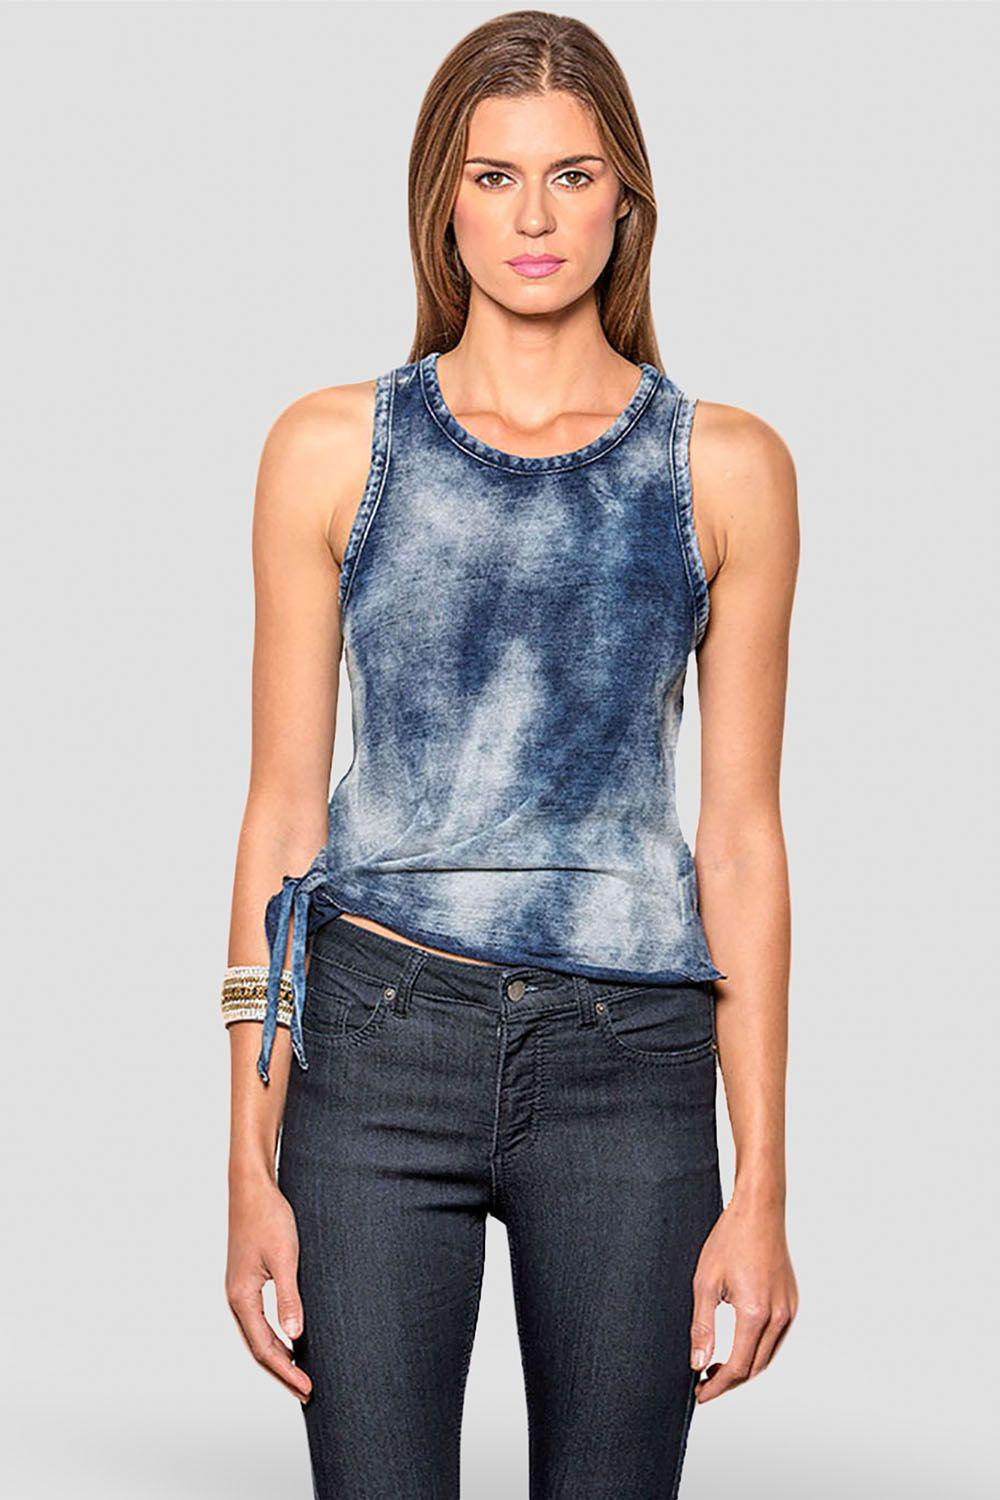 Margret Mineral Washed Indigo Jersey Tank Top With A Side Tie